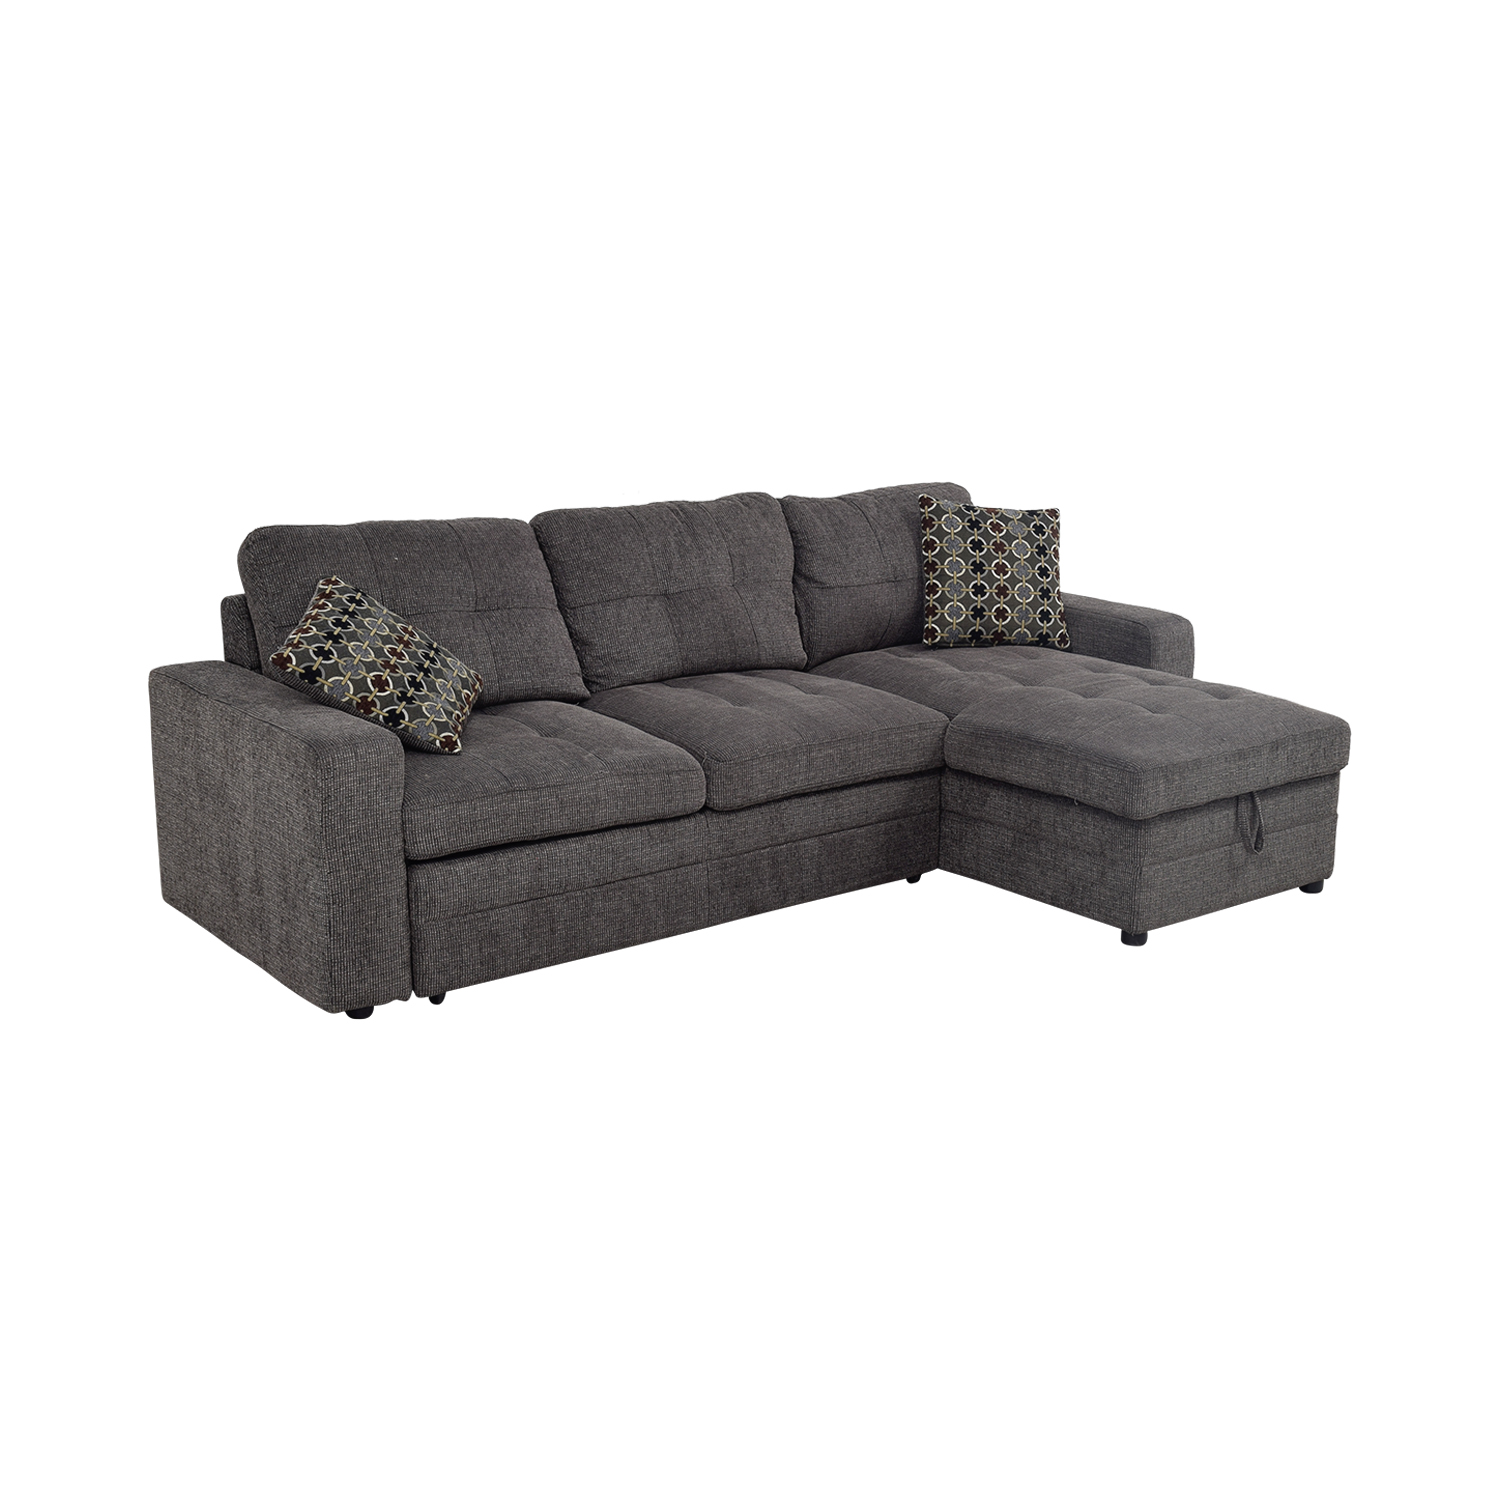 grey tweed sectional sofa 2 piece reclining set 45 off twin to full sofabed with